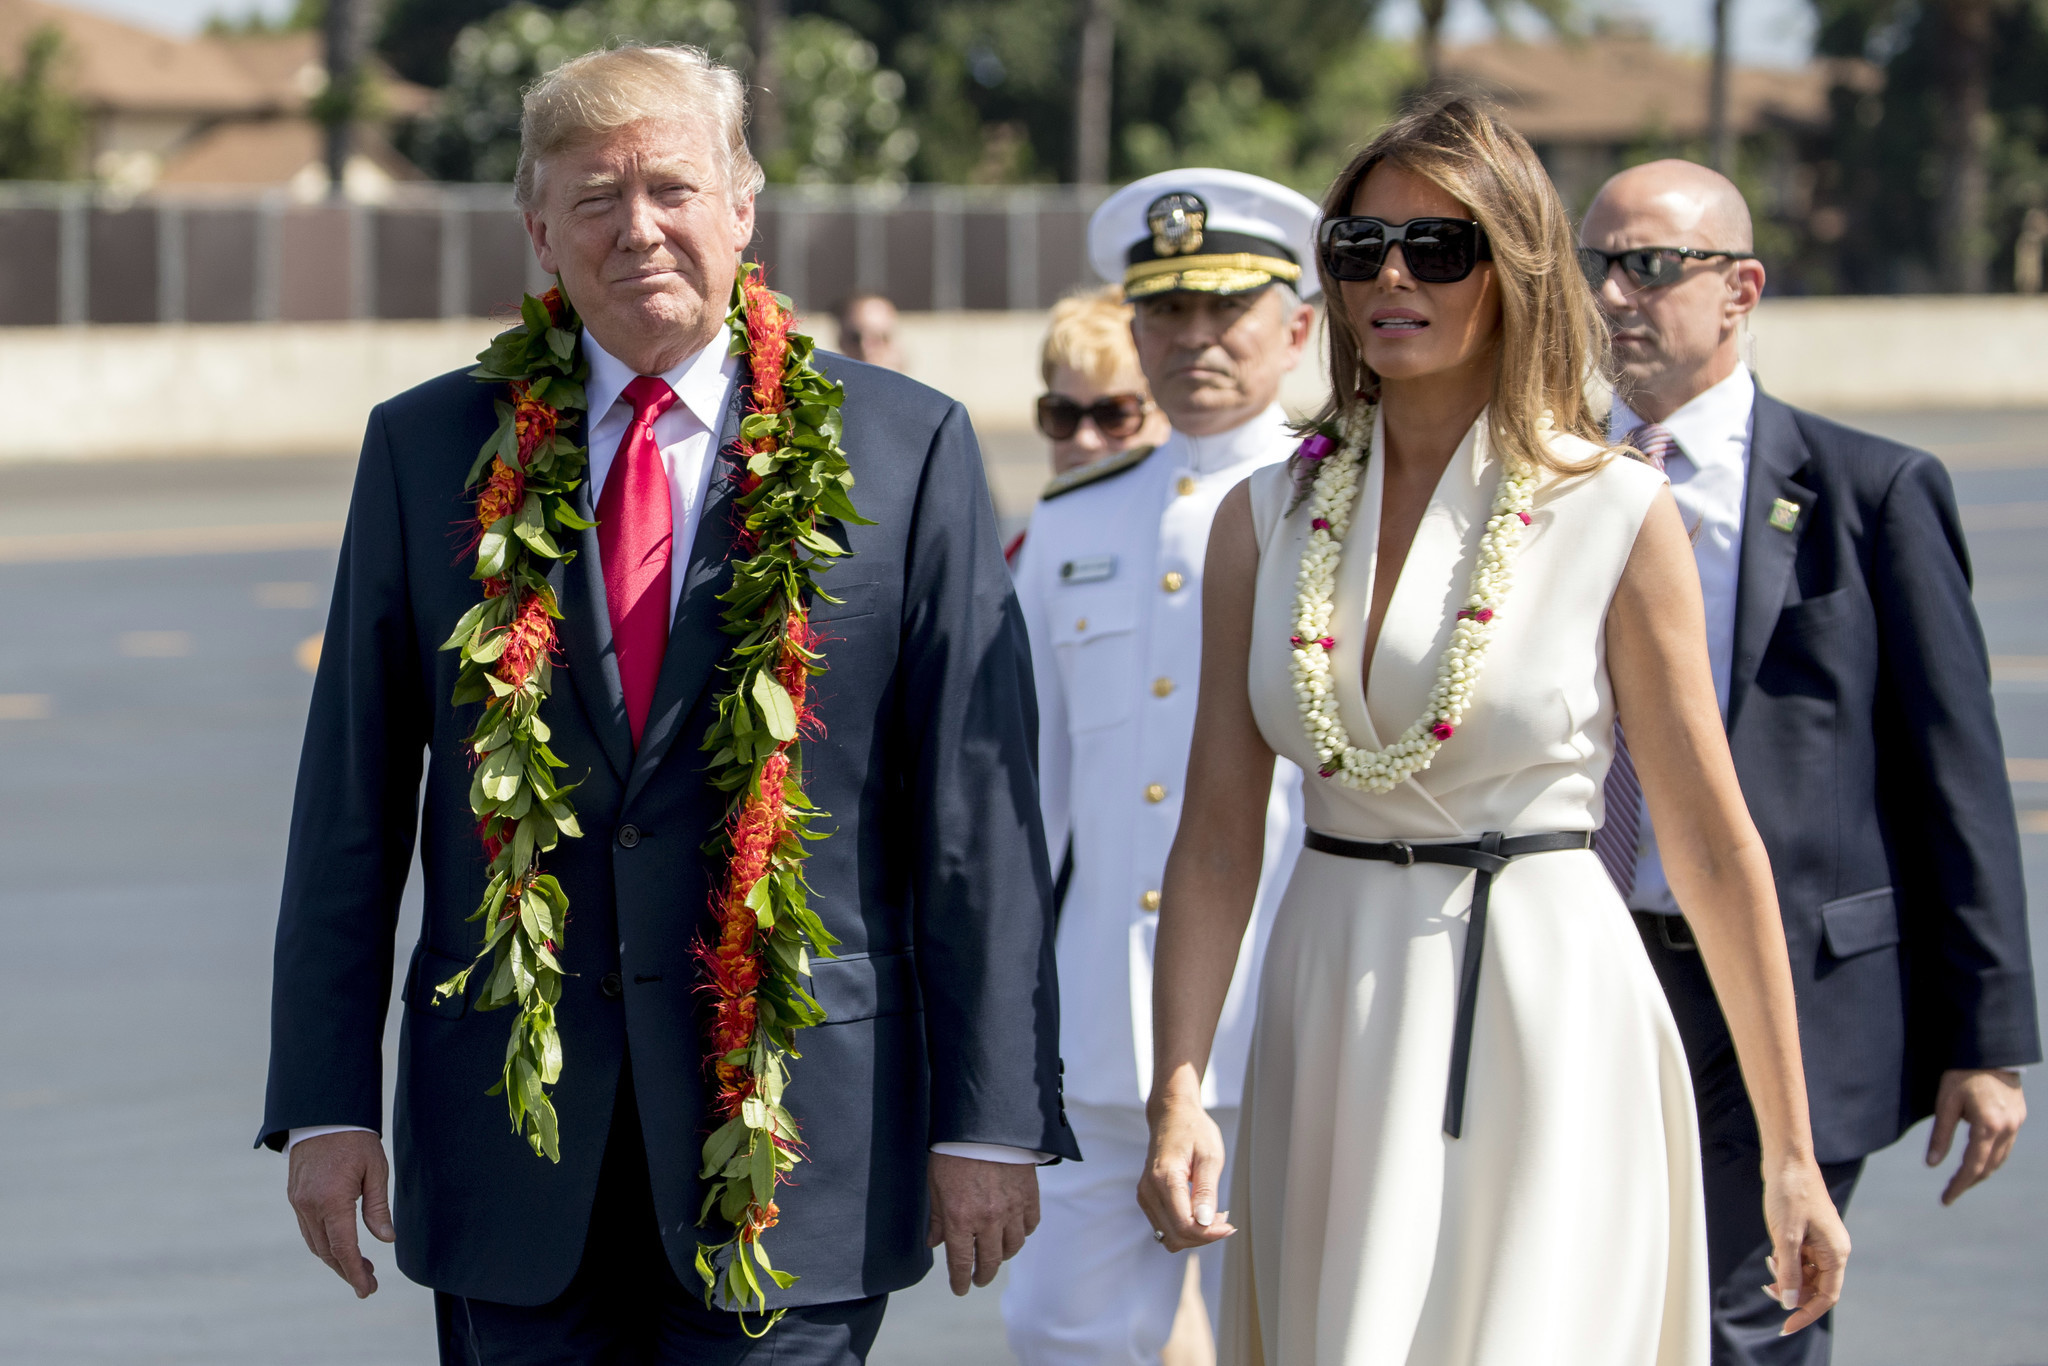 cf95e7c5acf48 Trump visits Pearl Harbor as security and trade loom large on first Asia  trip. Donald Trump ...